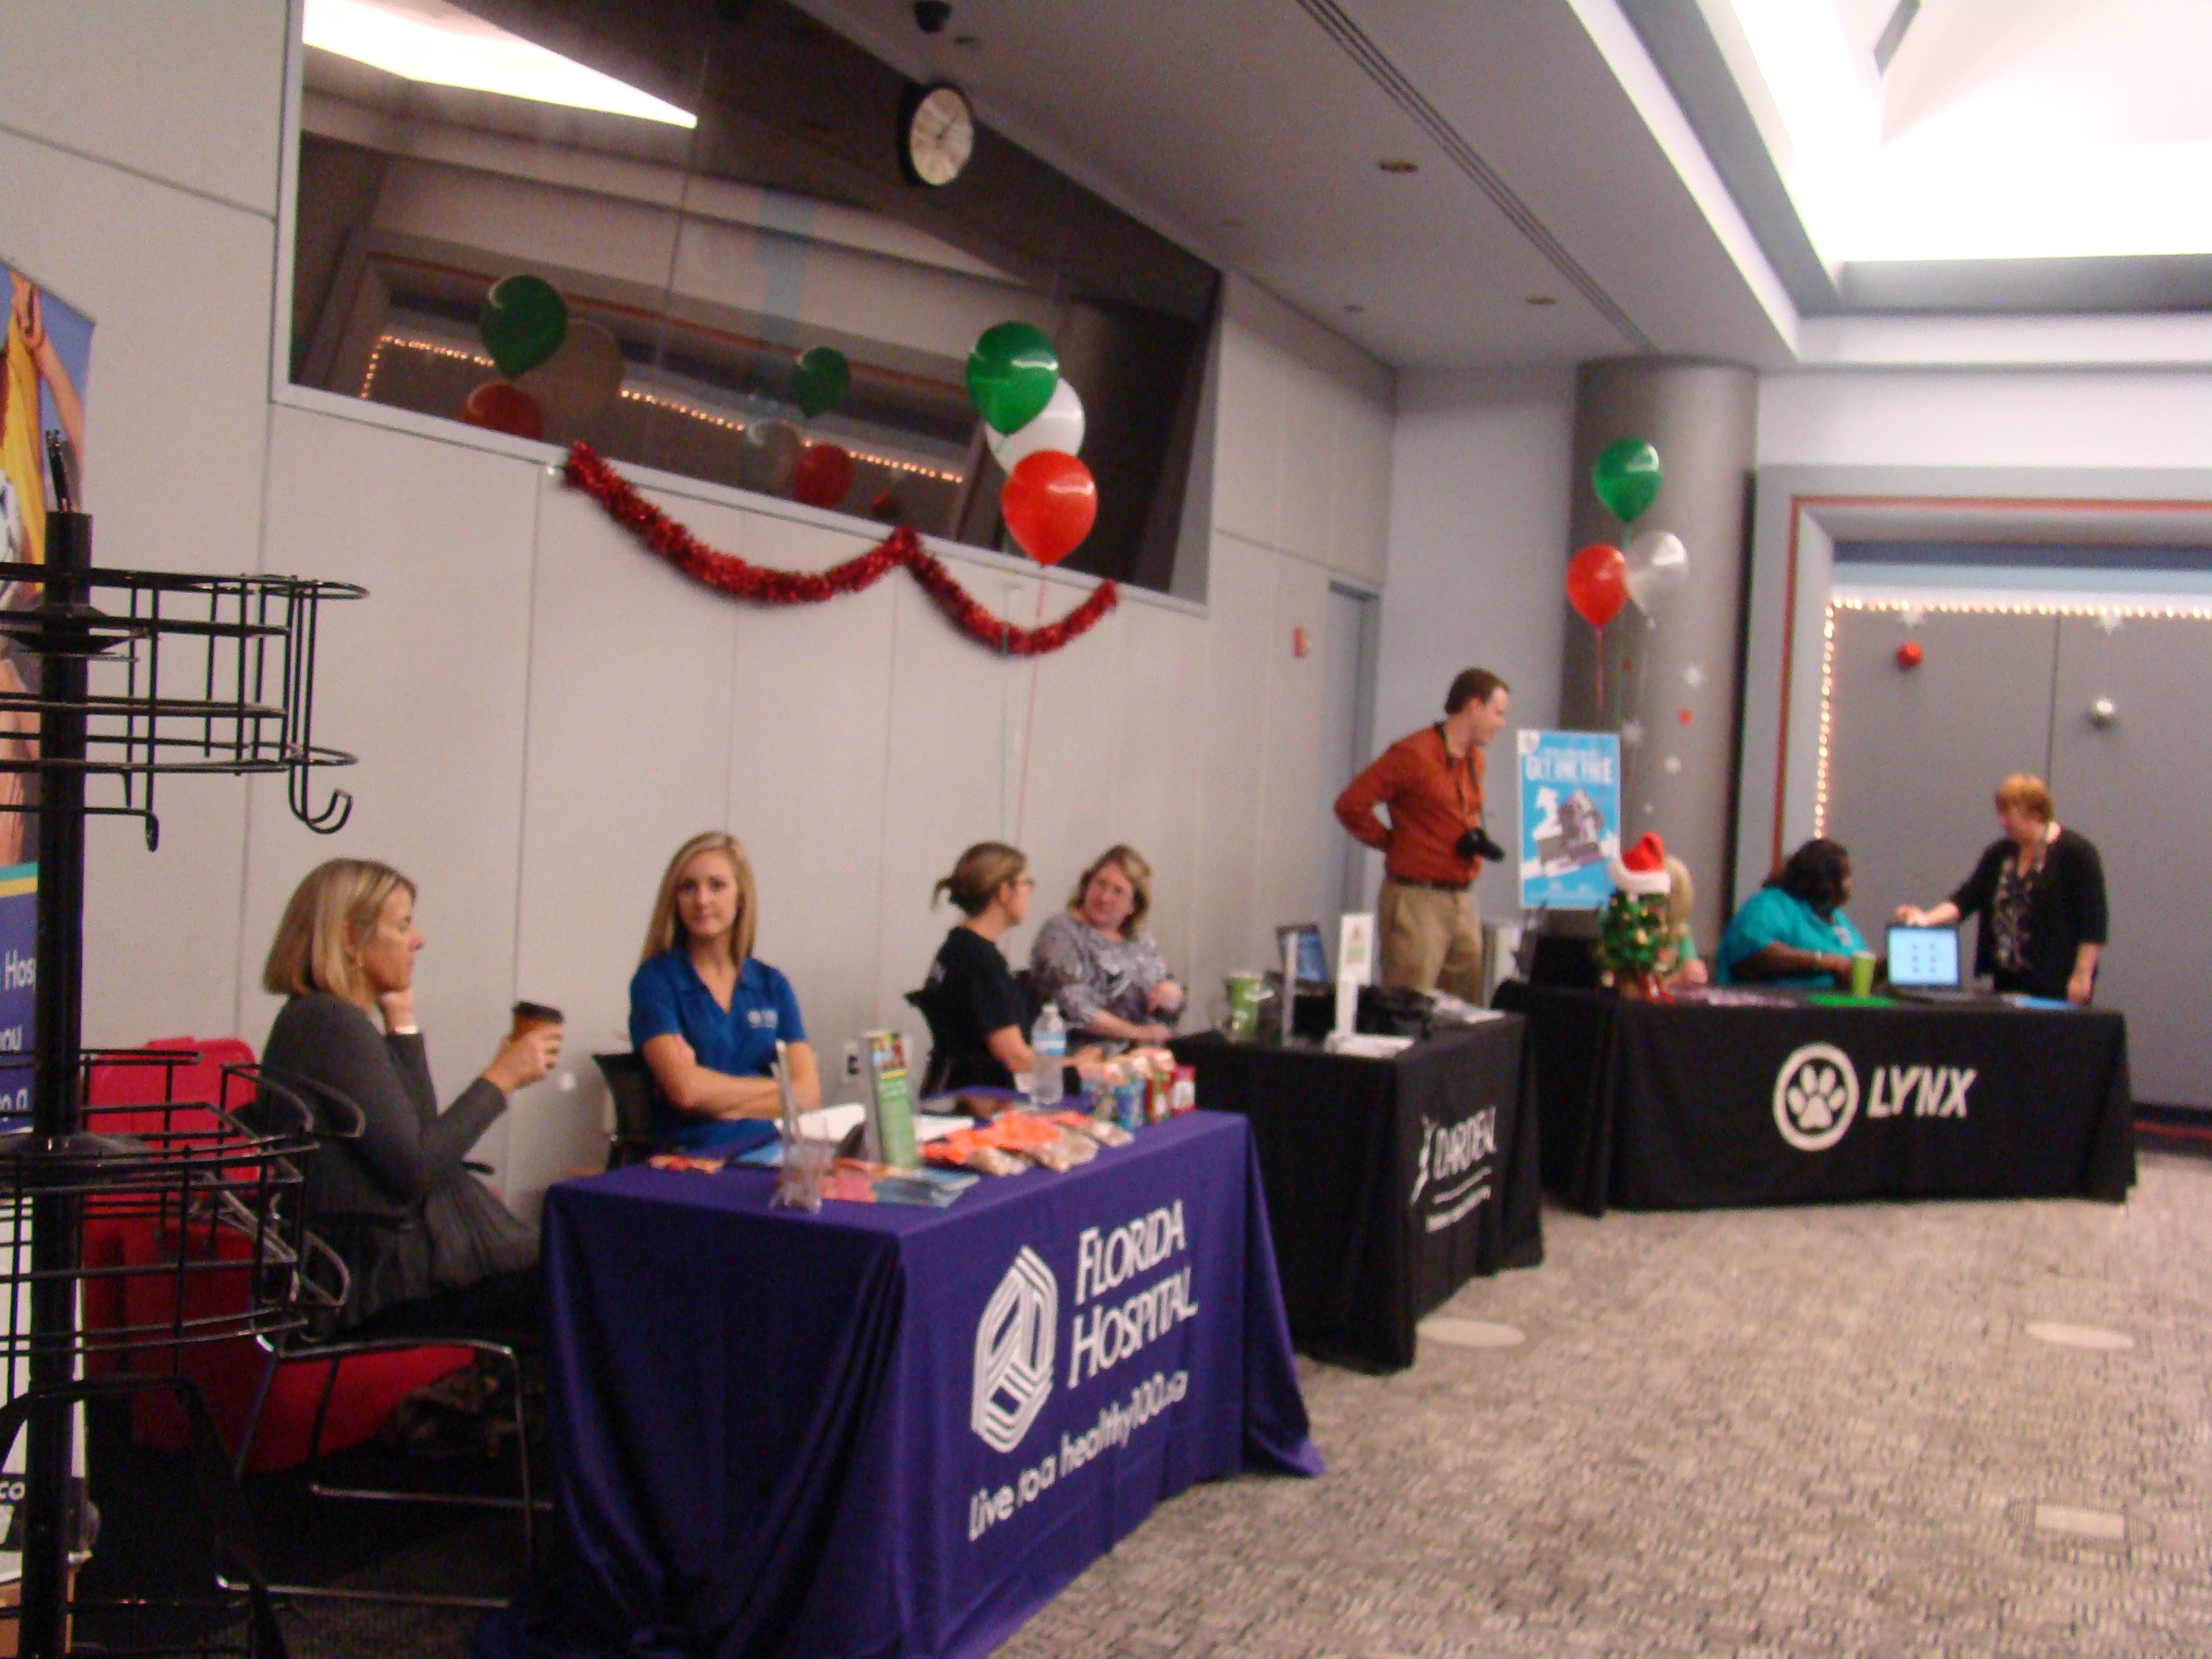 Florida Hospital Credit Union >> Florida Hospital And Darden Credit Union Convenience Fair